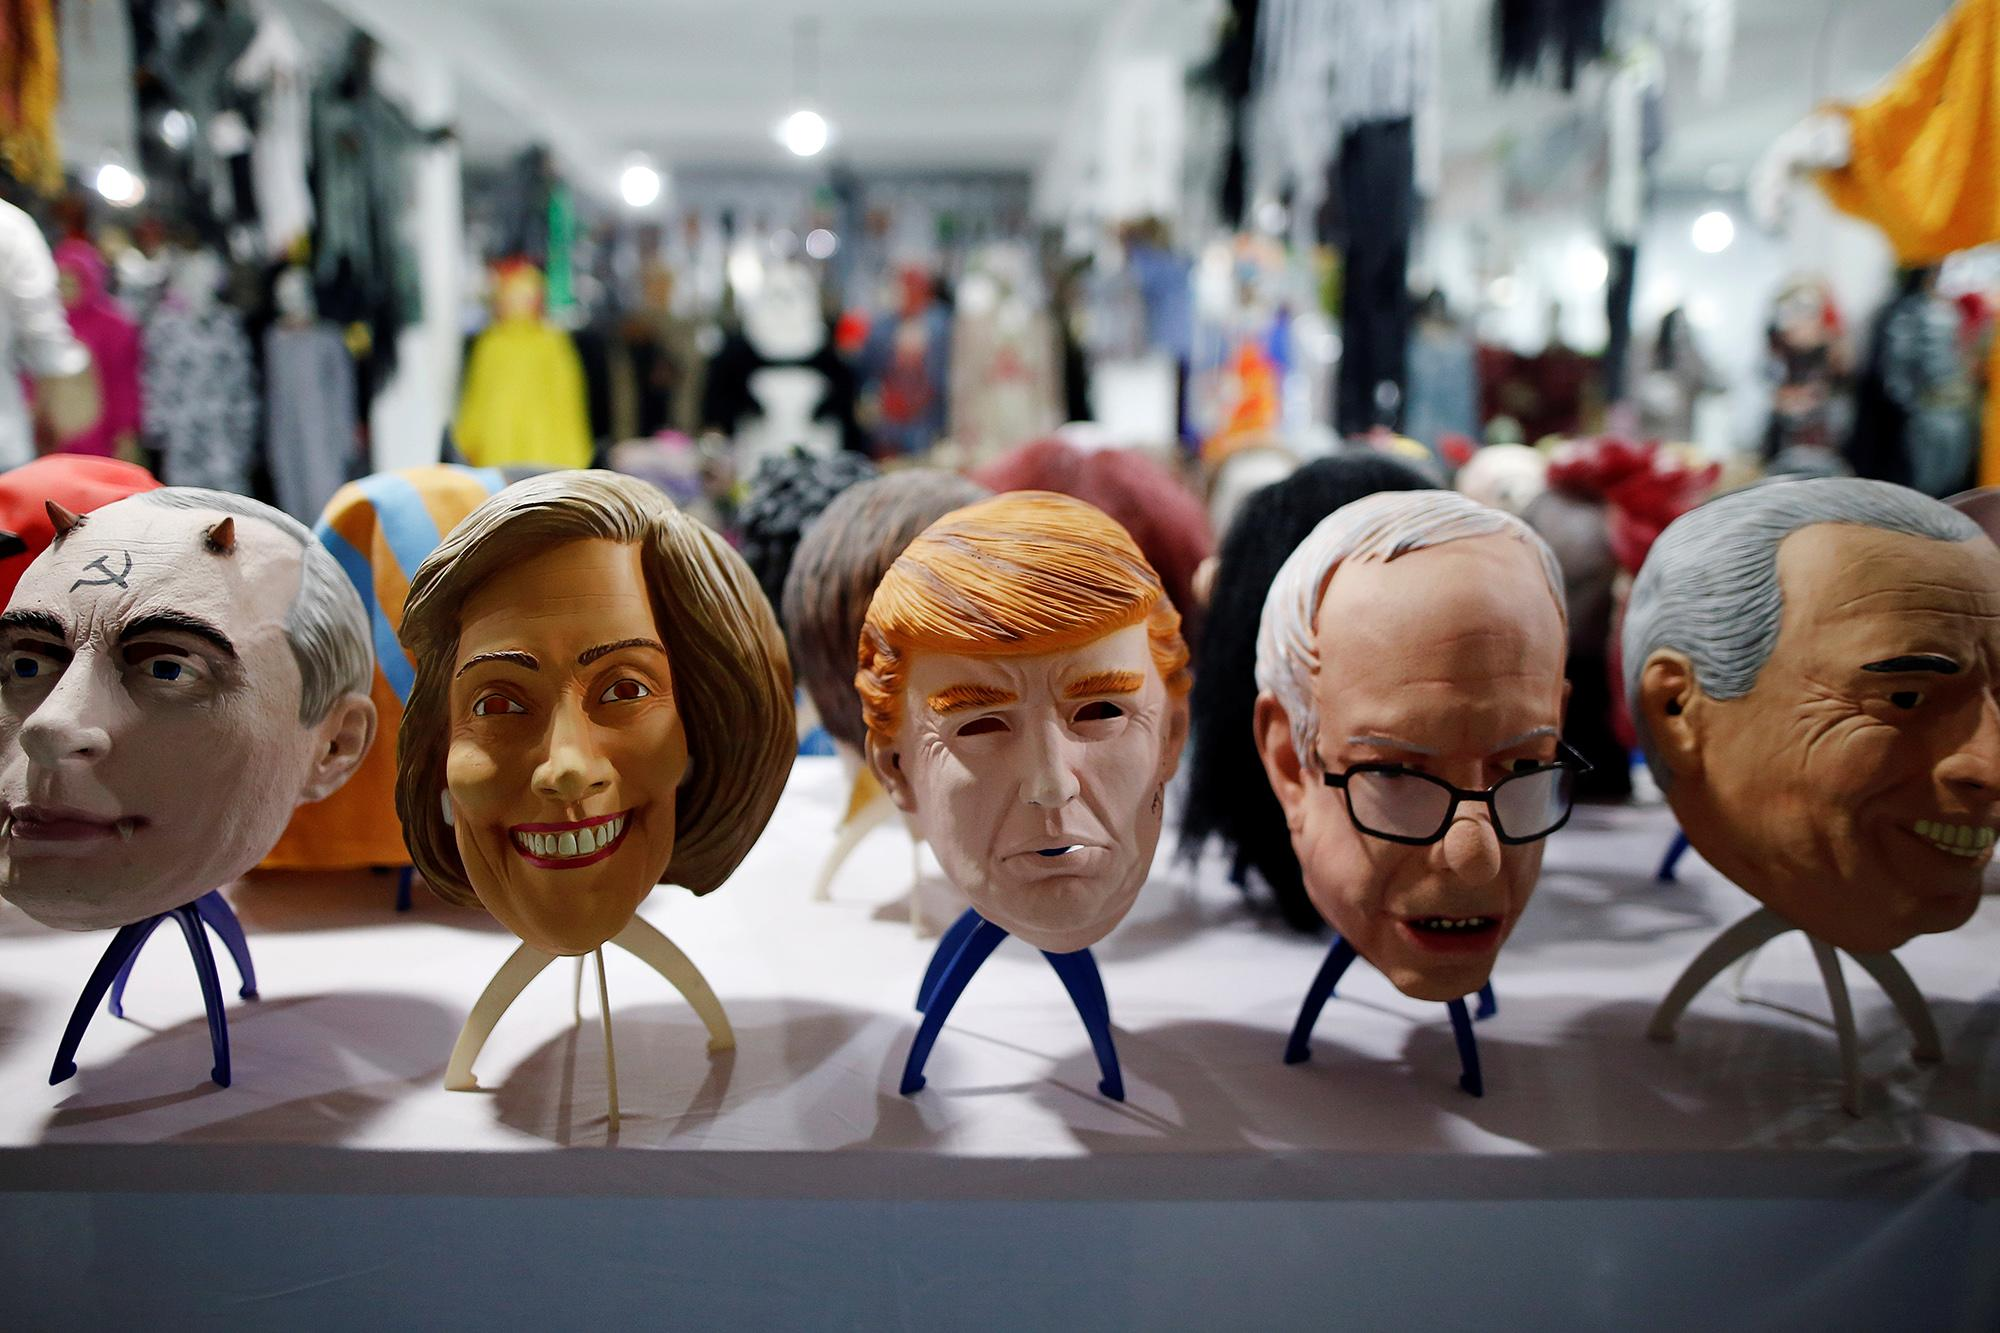 Manufacturing political masks for the U.S. election